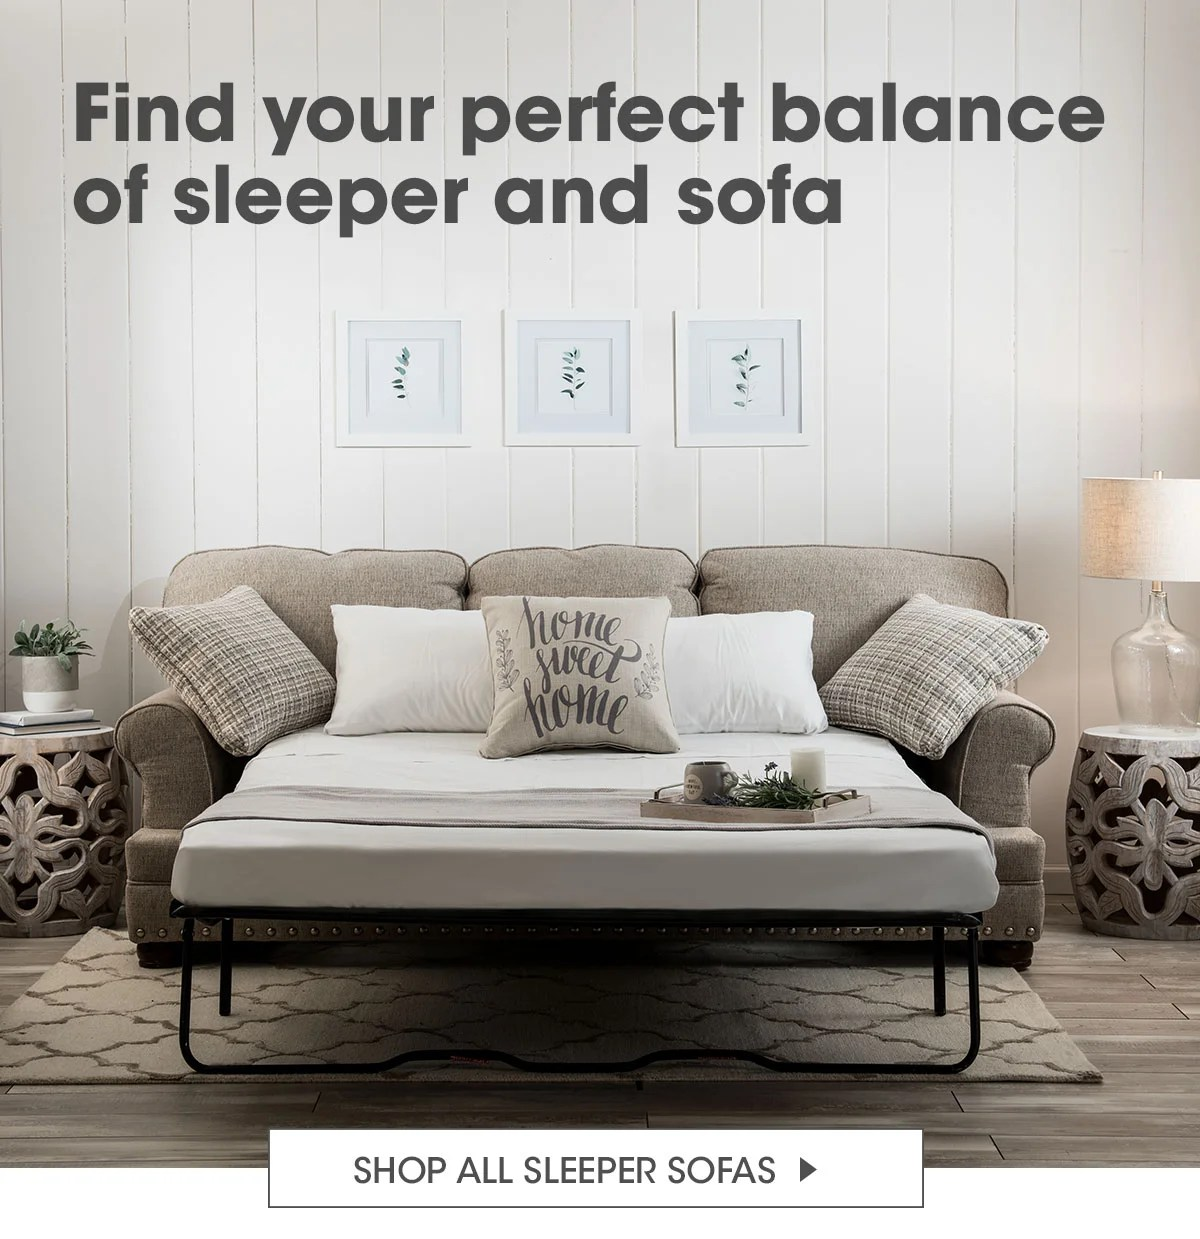 Bobs Discount Furniture Sleeper Sofas Starting At 699 Milled